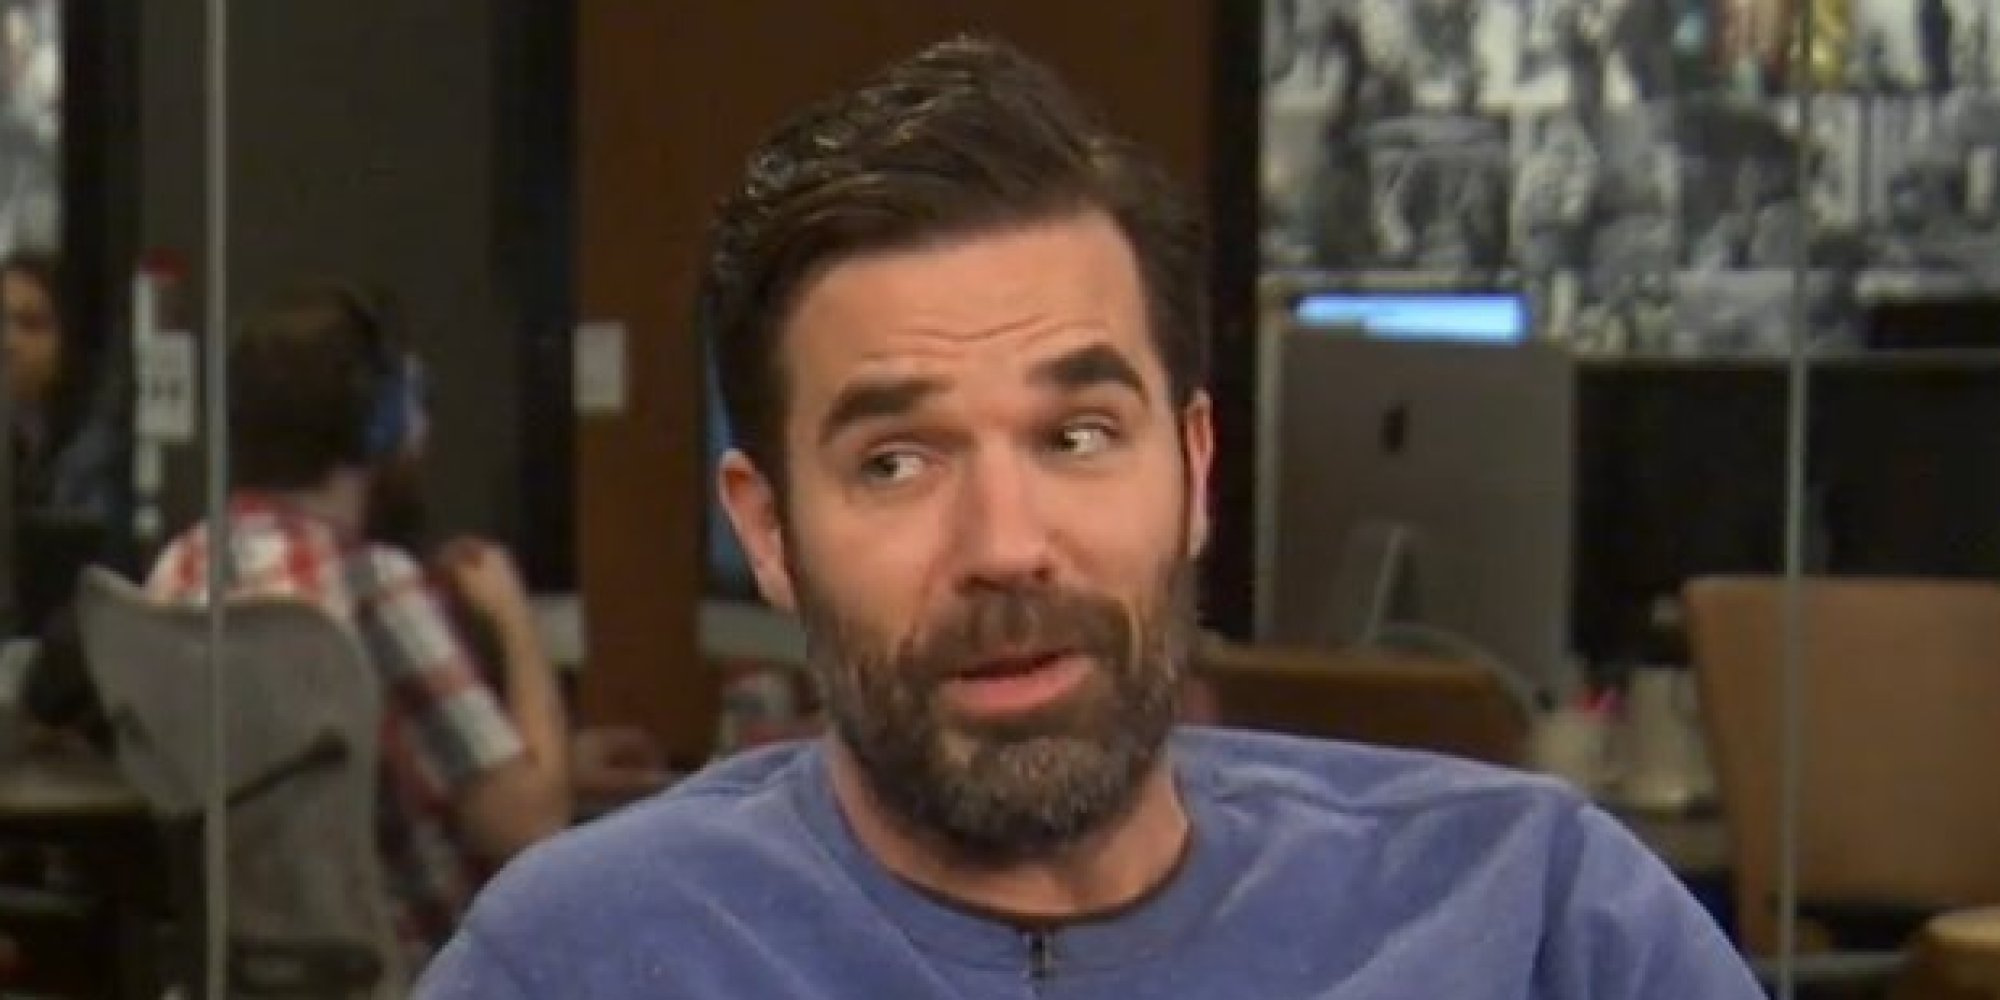 1st studio siberian mouse nude A Rob Delaney Describes His Specially-Made 'Modesty Pouch' For Sex Scenes On  'Catastrophe' | HuffPost